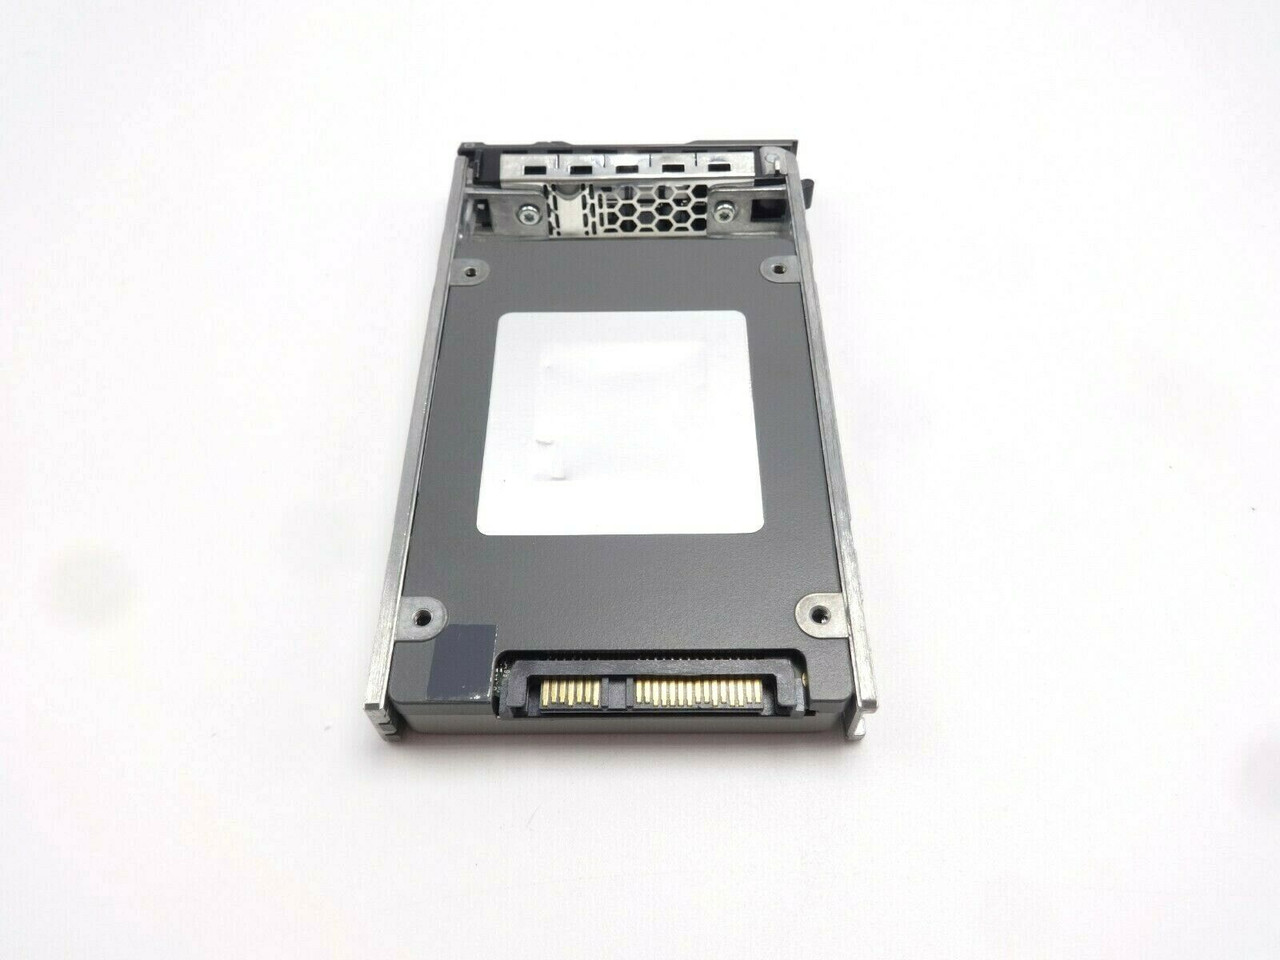 Dell 6R5R8 200GB 6Gbps SAS 2.5 SSD Solid State Hard Drive